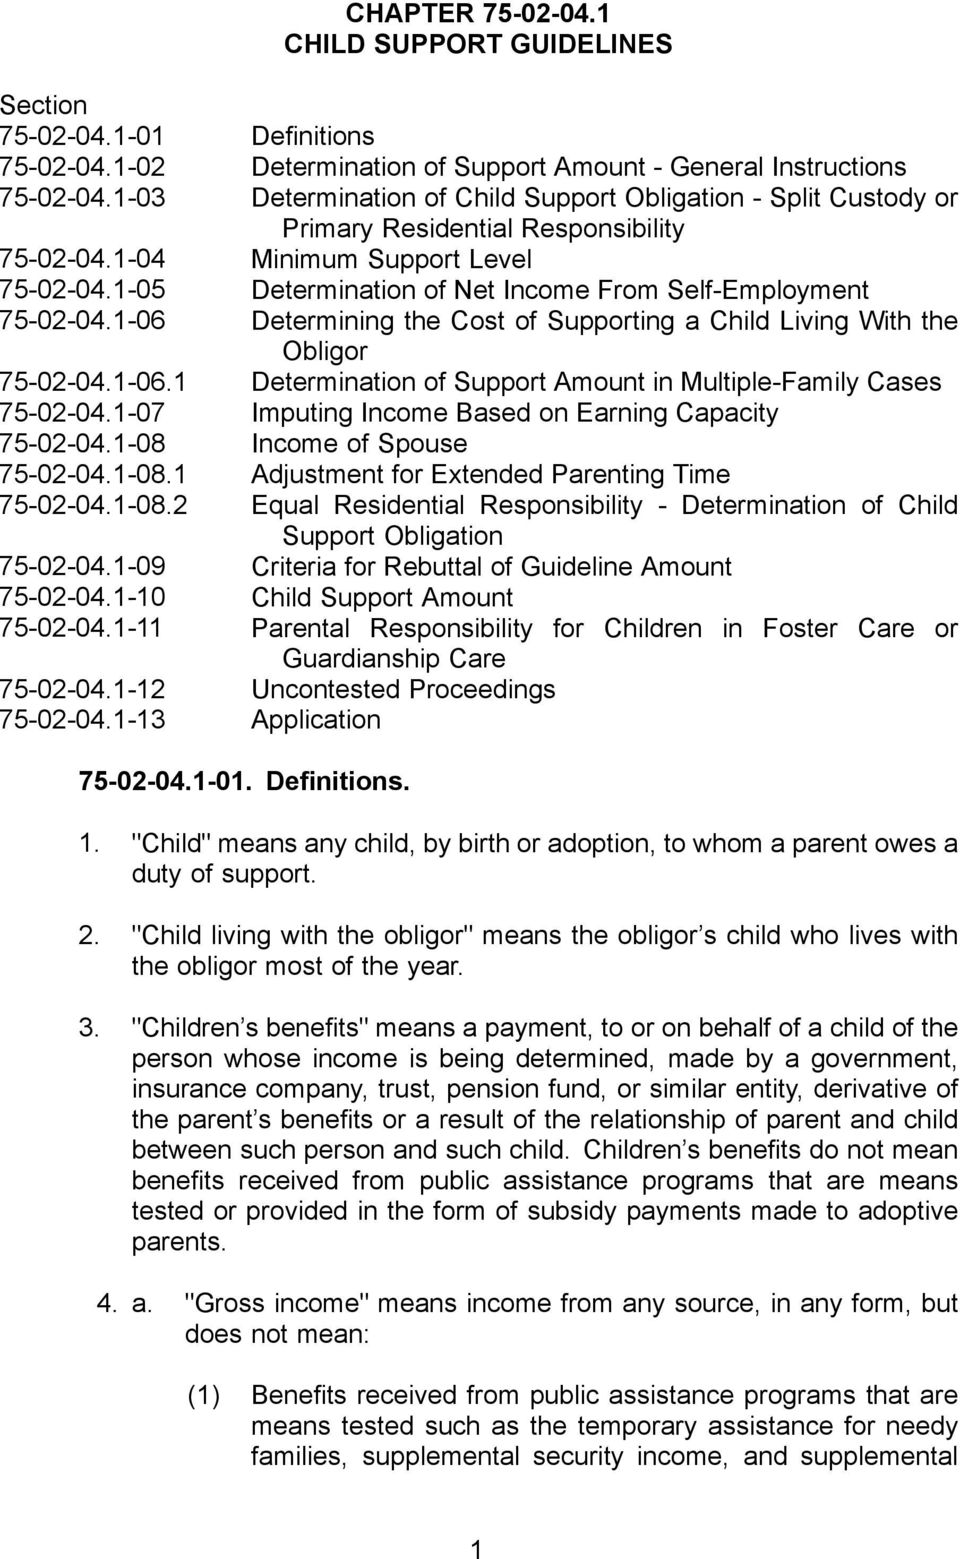 1-05 Determination of Net Income From Self-Employment 75-02-04.1-06 Determining the Cost of Supporting a Child Living With the Obligor 75-02-04.1-06.1 Determination of Support Amount in Multiple-Family Cases 75-02-04.